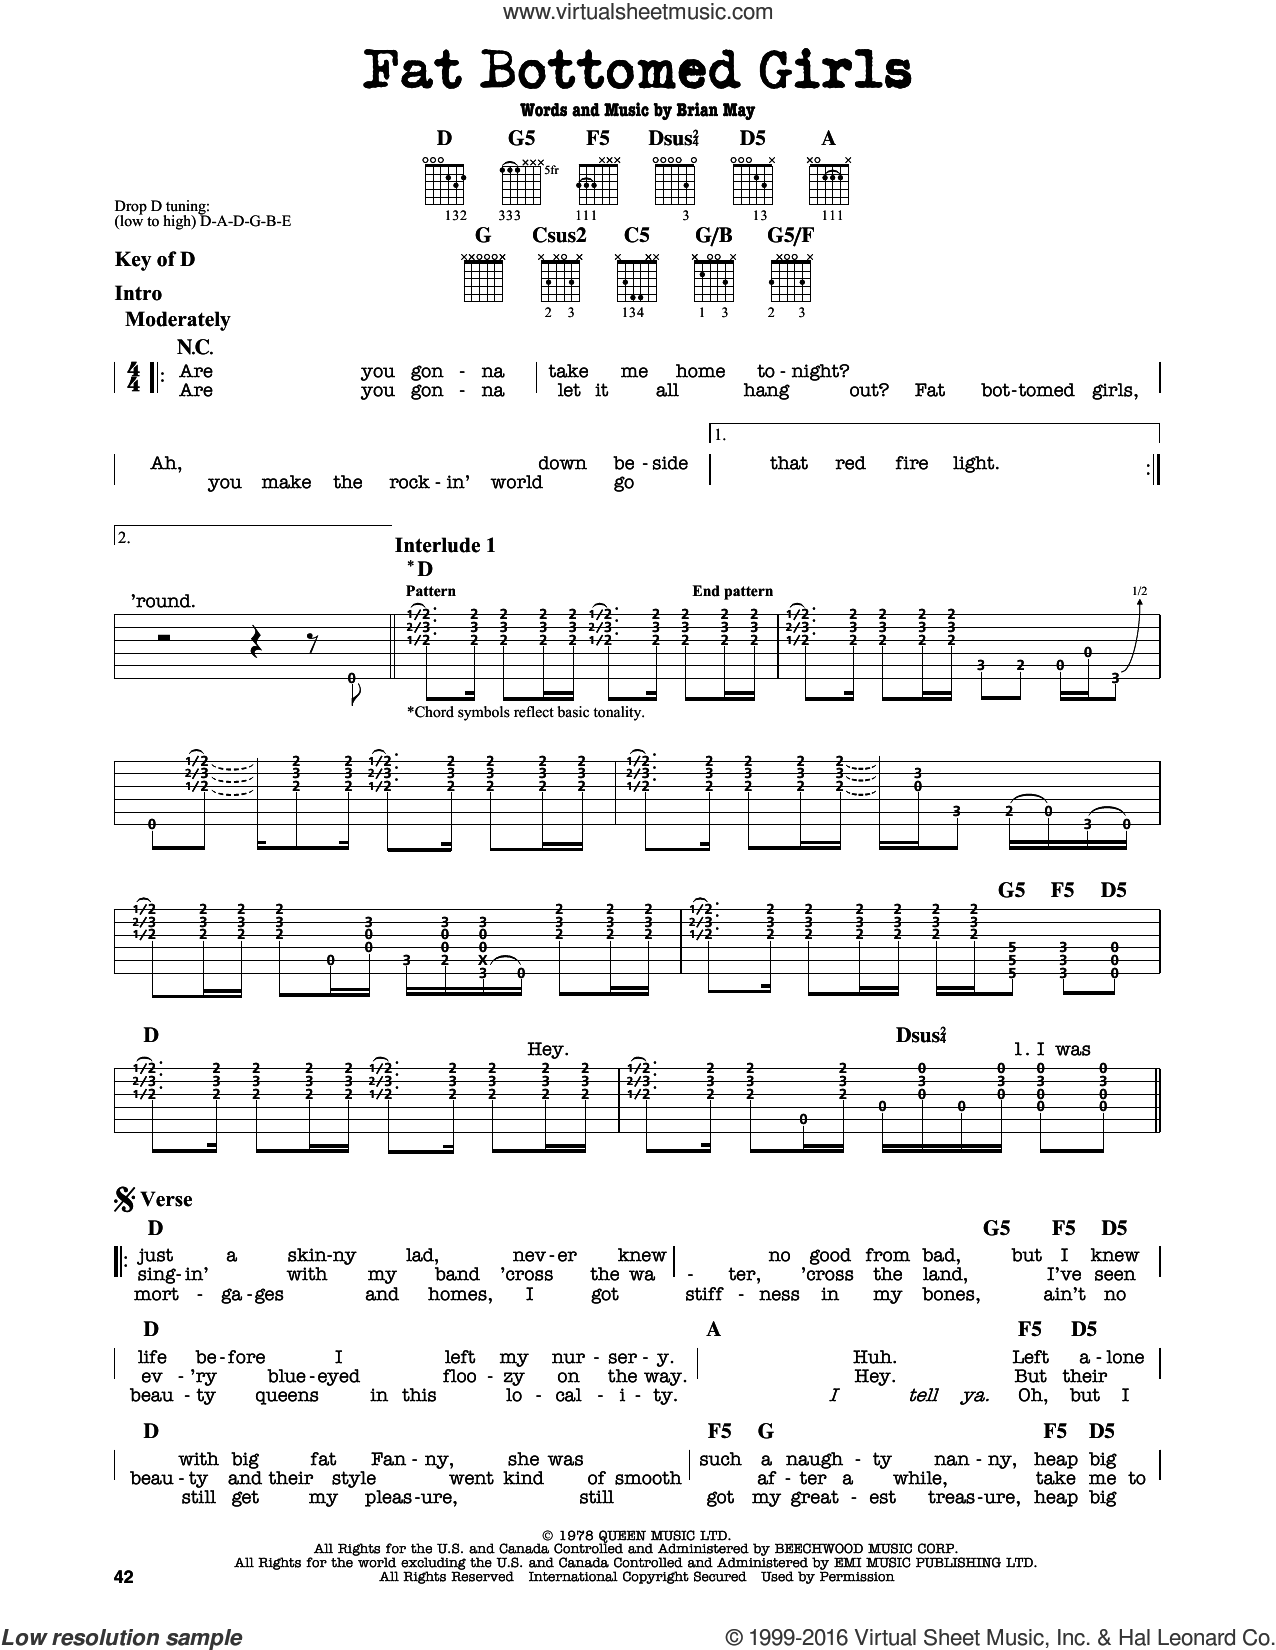 Fat Bottomed Girls sheet music for guitar solo (lead sheet) by Queen and Brian May, intermediate guitar (lead sheet). Score Image Preview.